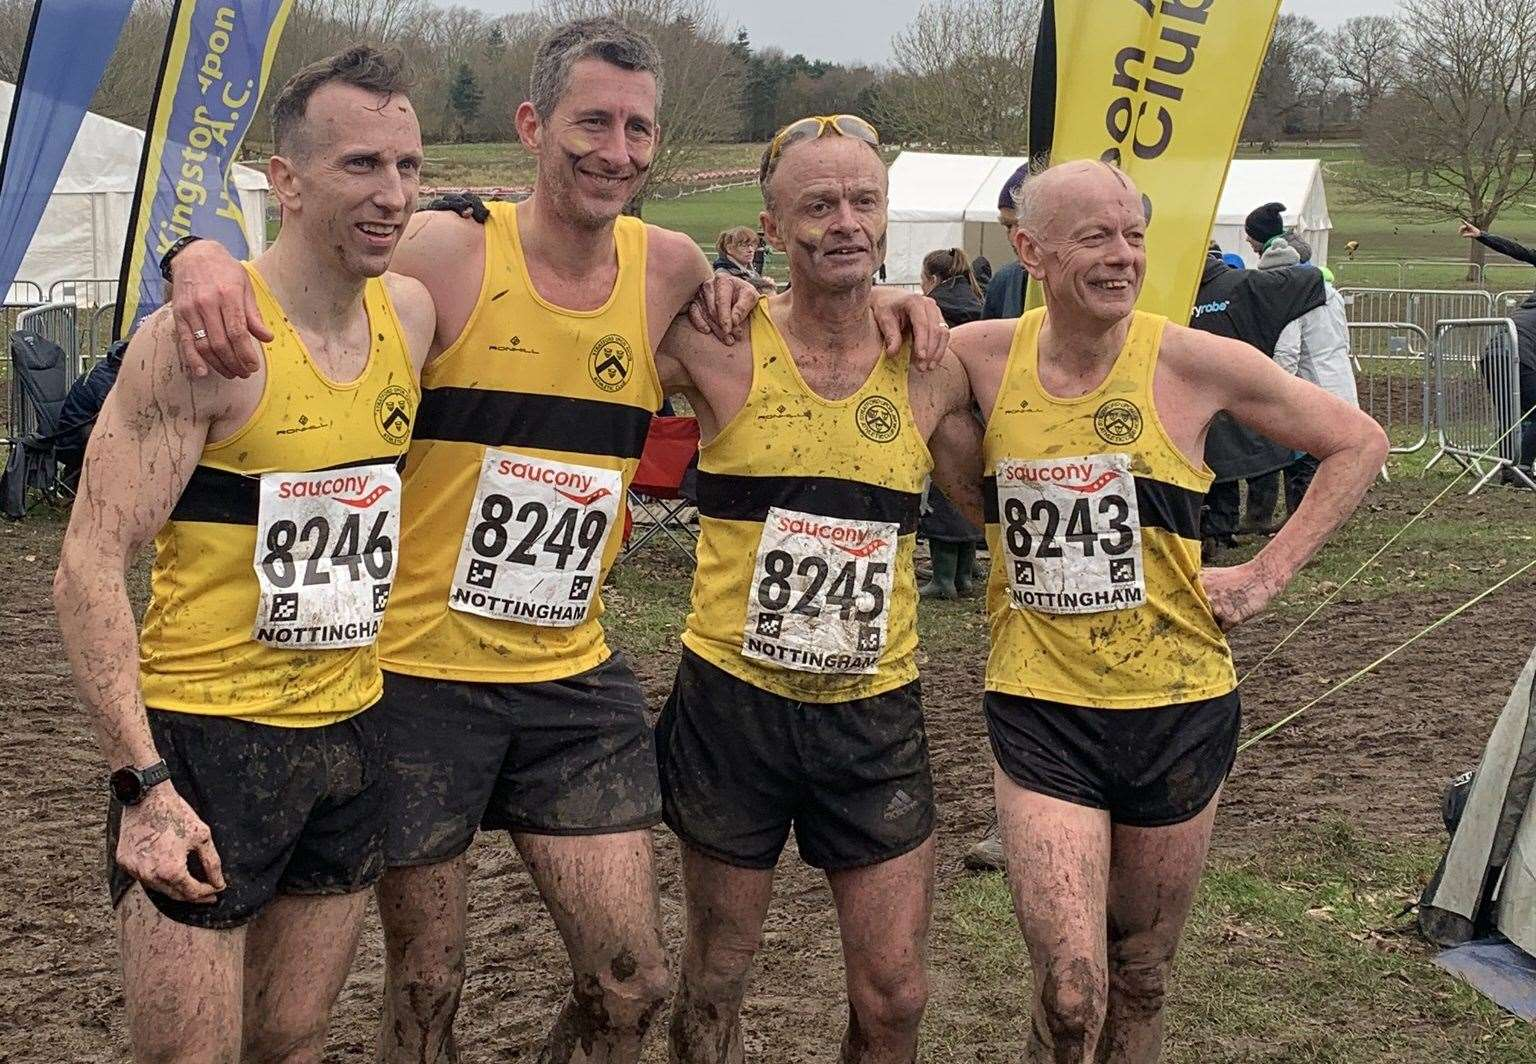 The senior mens team of John Ray, Seth Turner, Tim Hutchinson and Malcolm Bowyer.